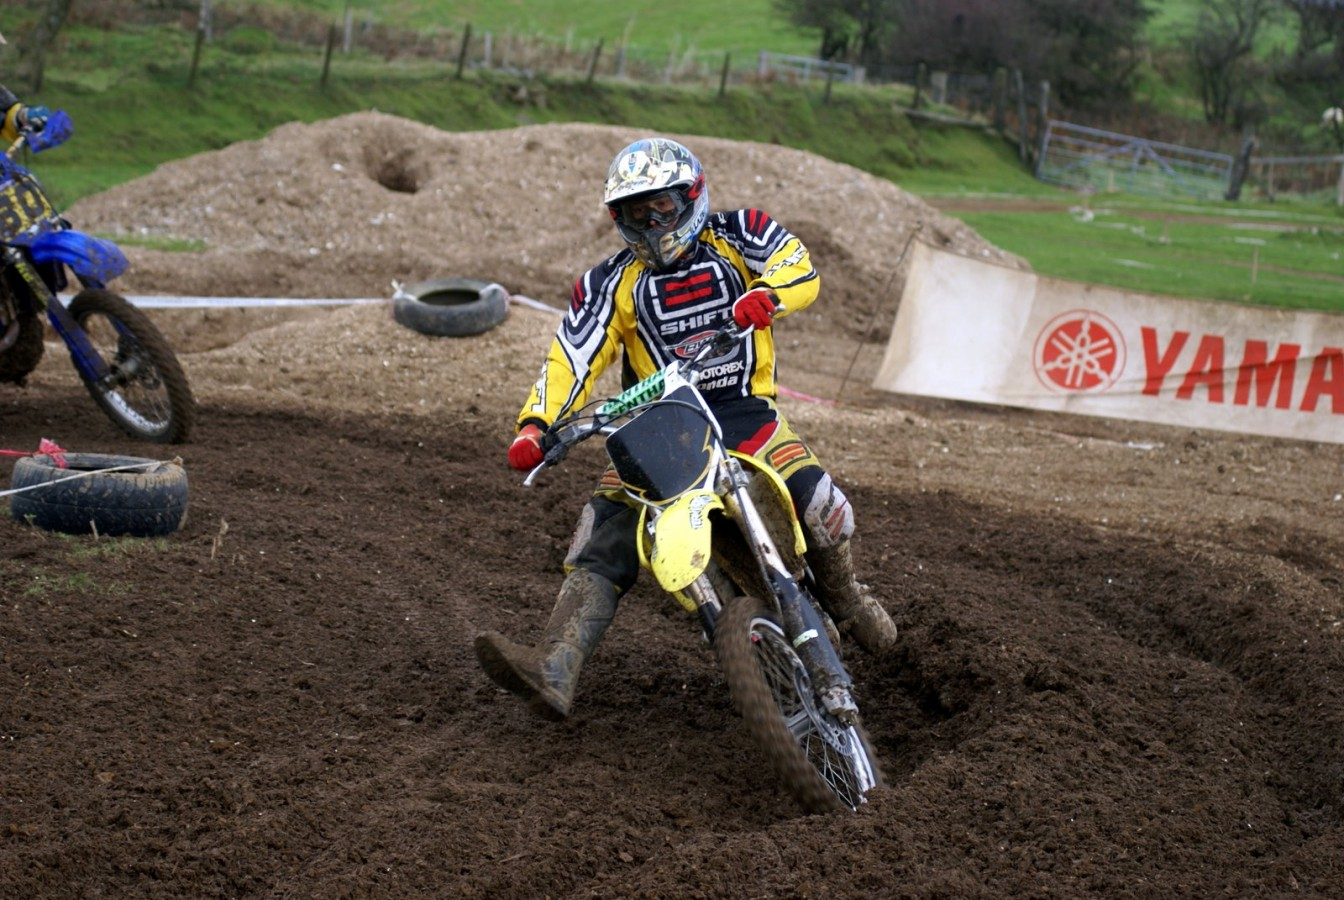 Cefn Parc MX Trax Bridgend, click to close